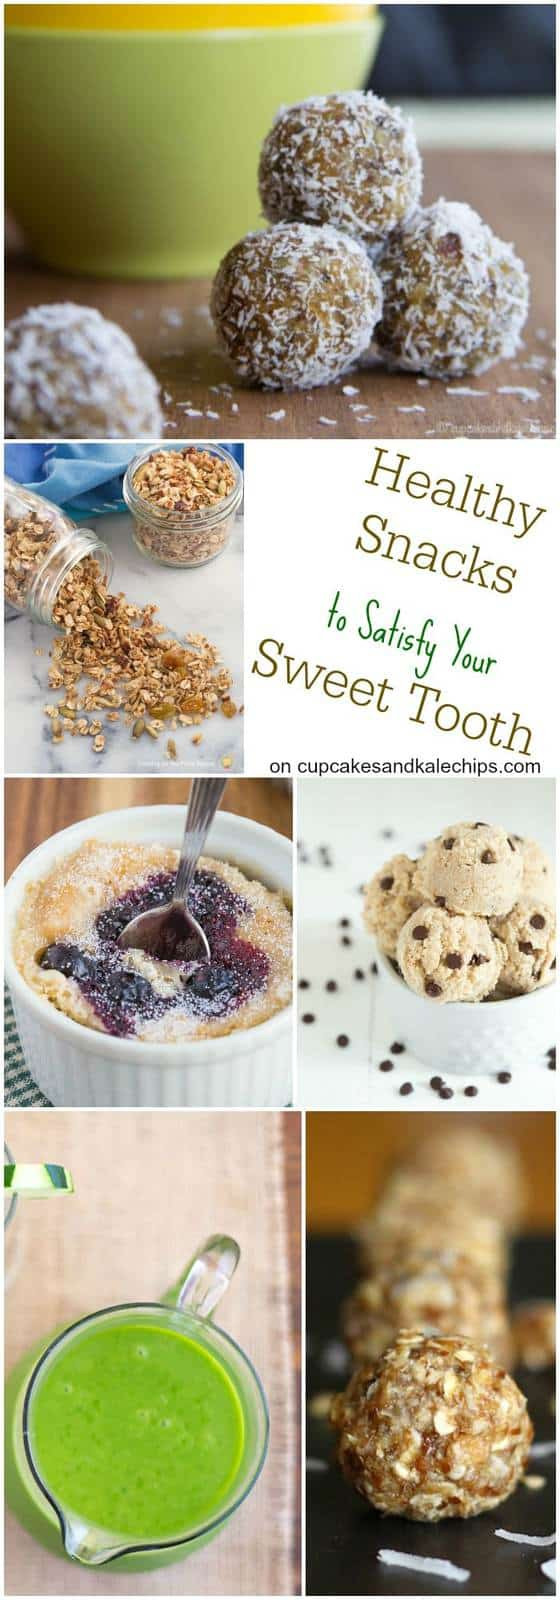 Healthy Snacks For Sweet Cravings  25 Healthy Snacks to Satisfy Your Sweet Tooth Cupcakes